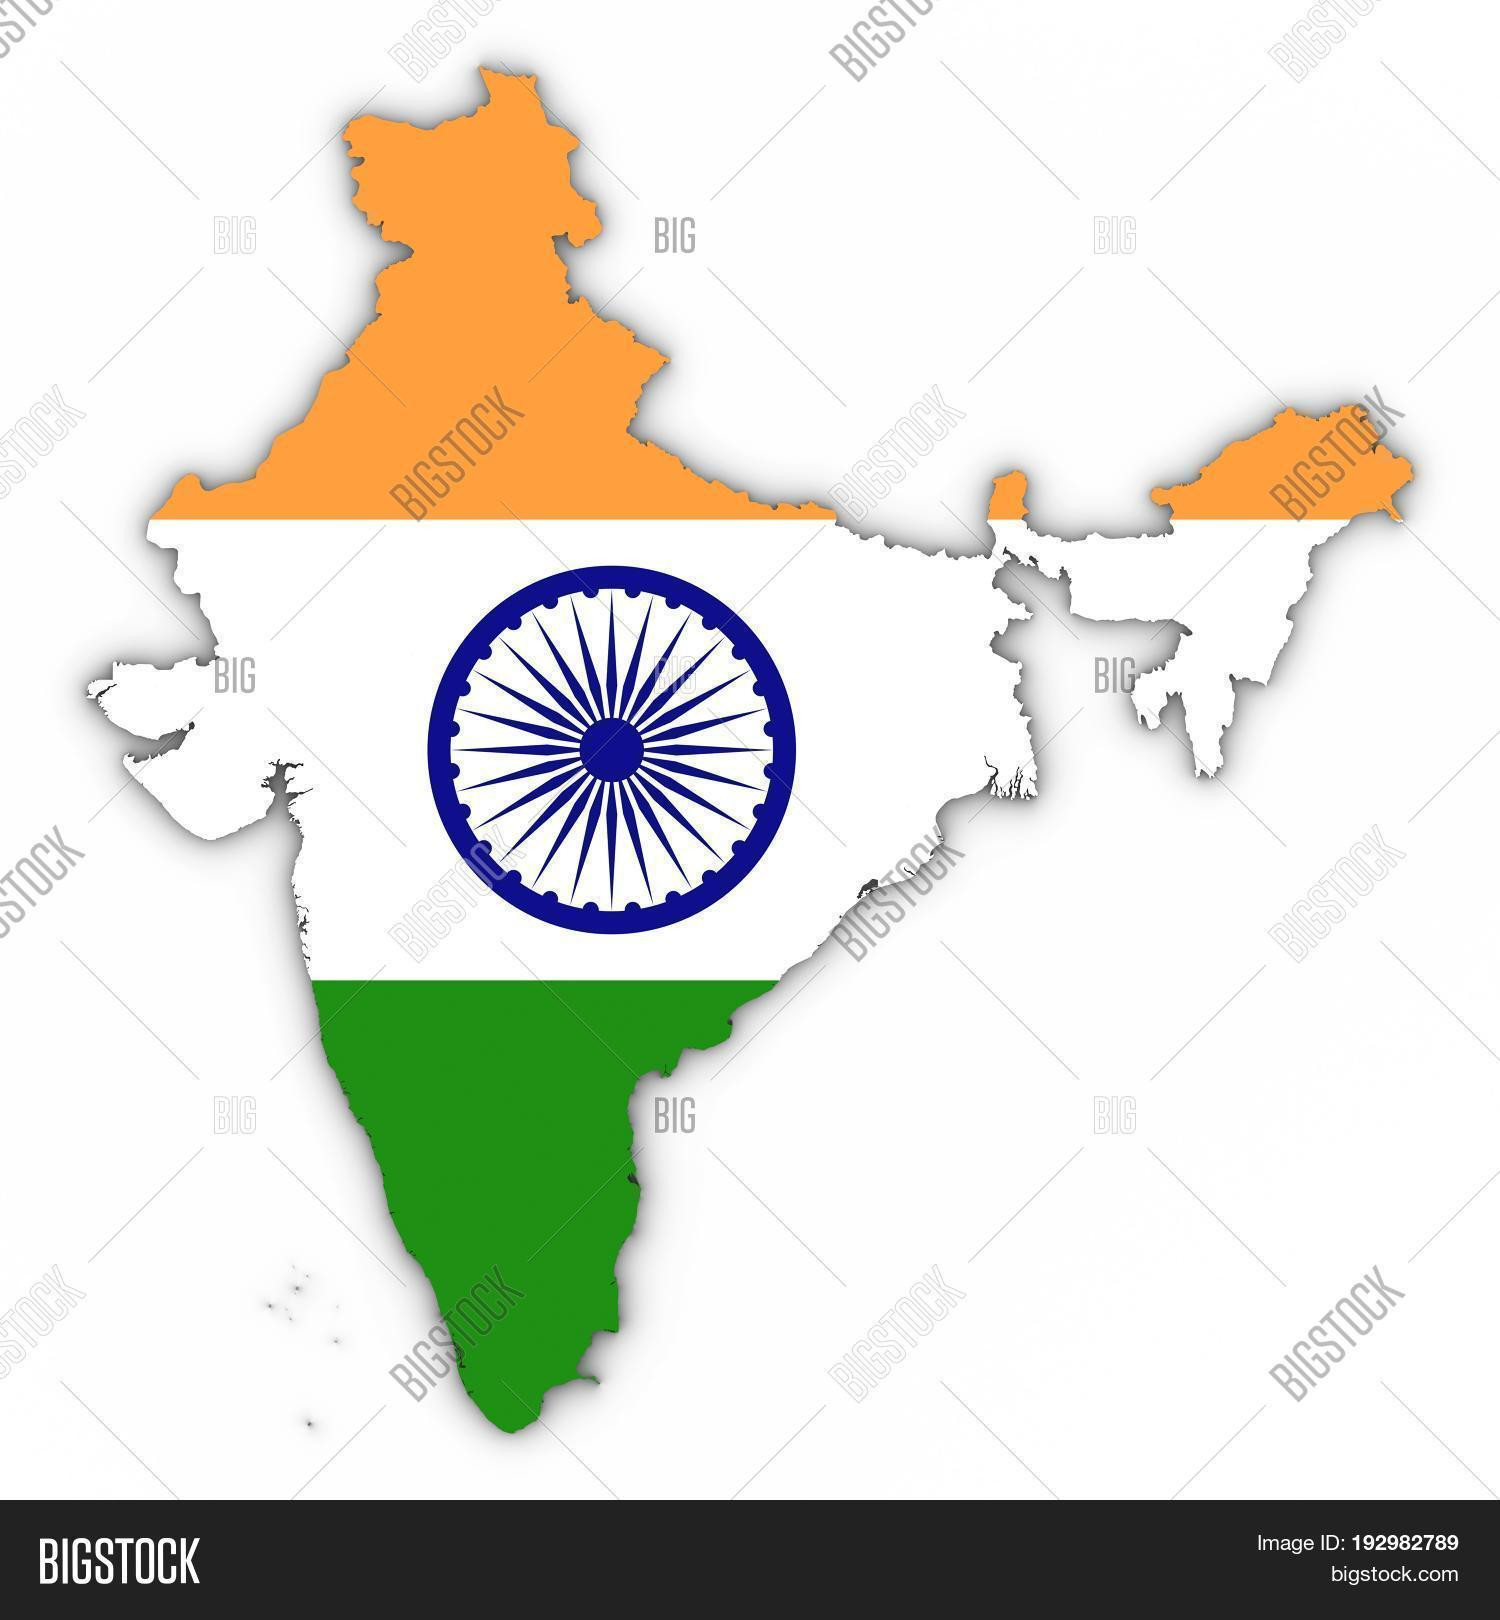 India Map Outline Image & Photo (Free Trial) | Bigstock